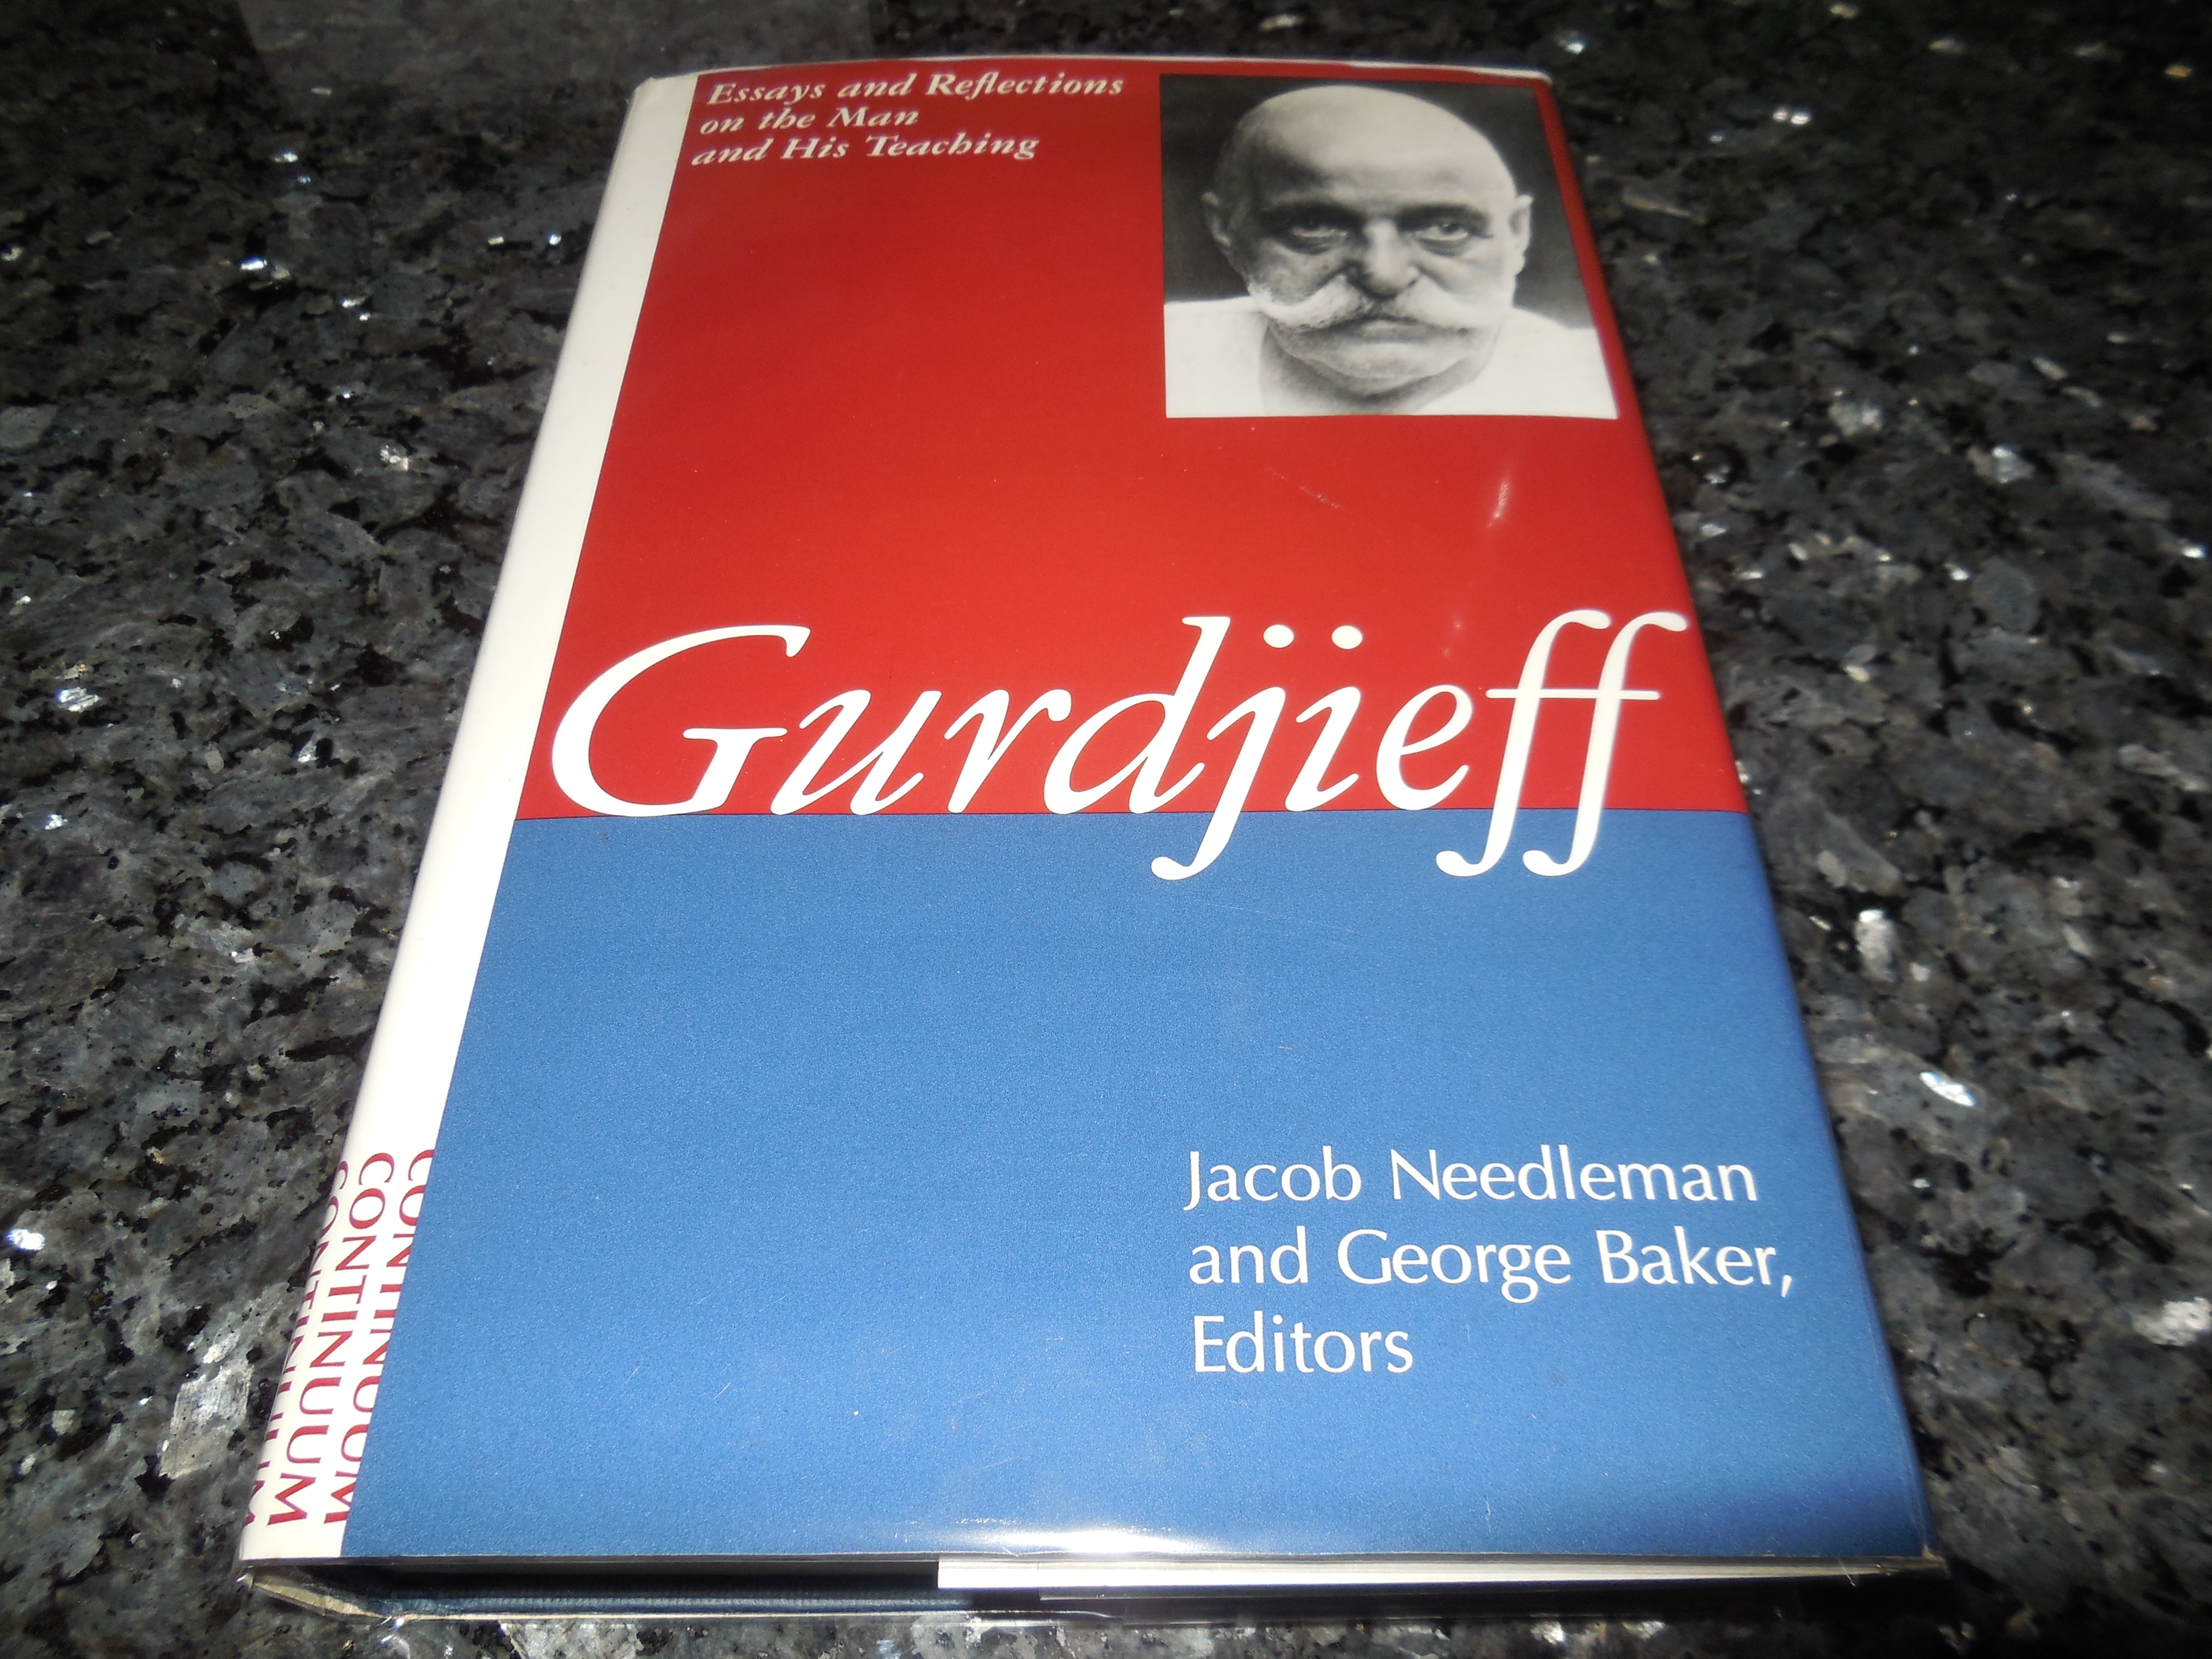 Image for Gurdjieff: Essays and Reflections on the Man and His Teaching